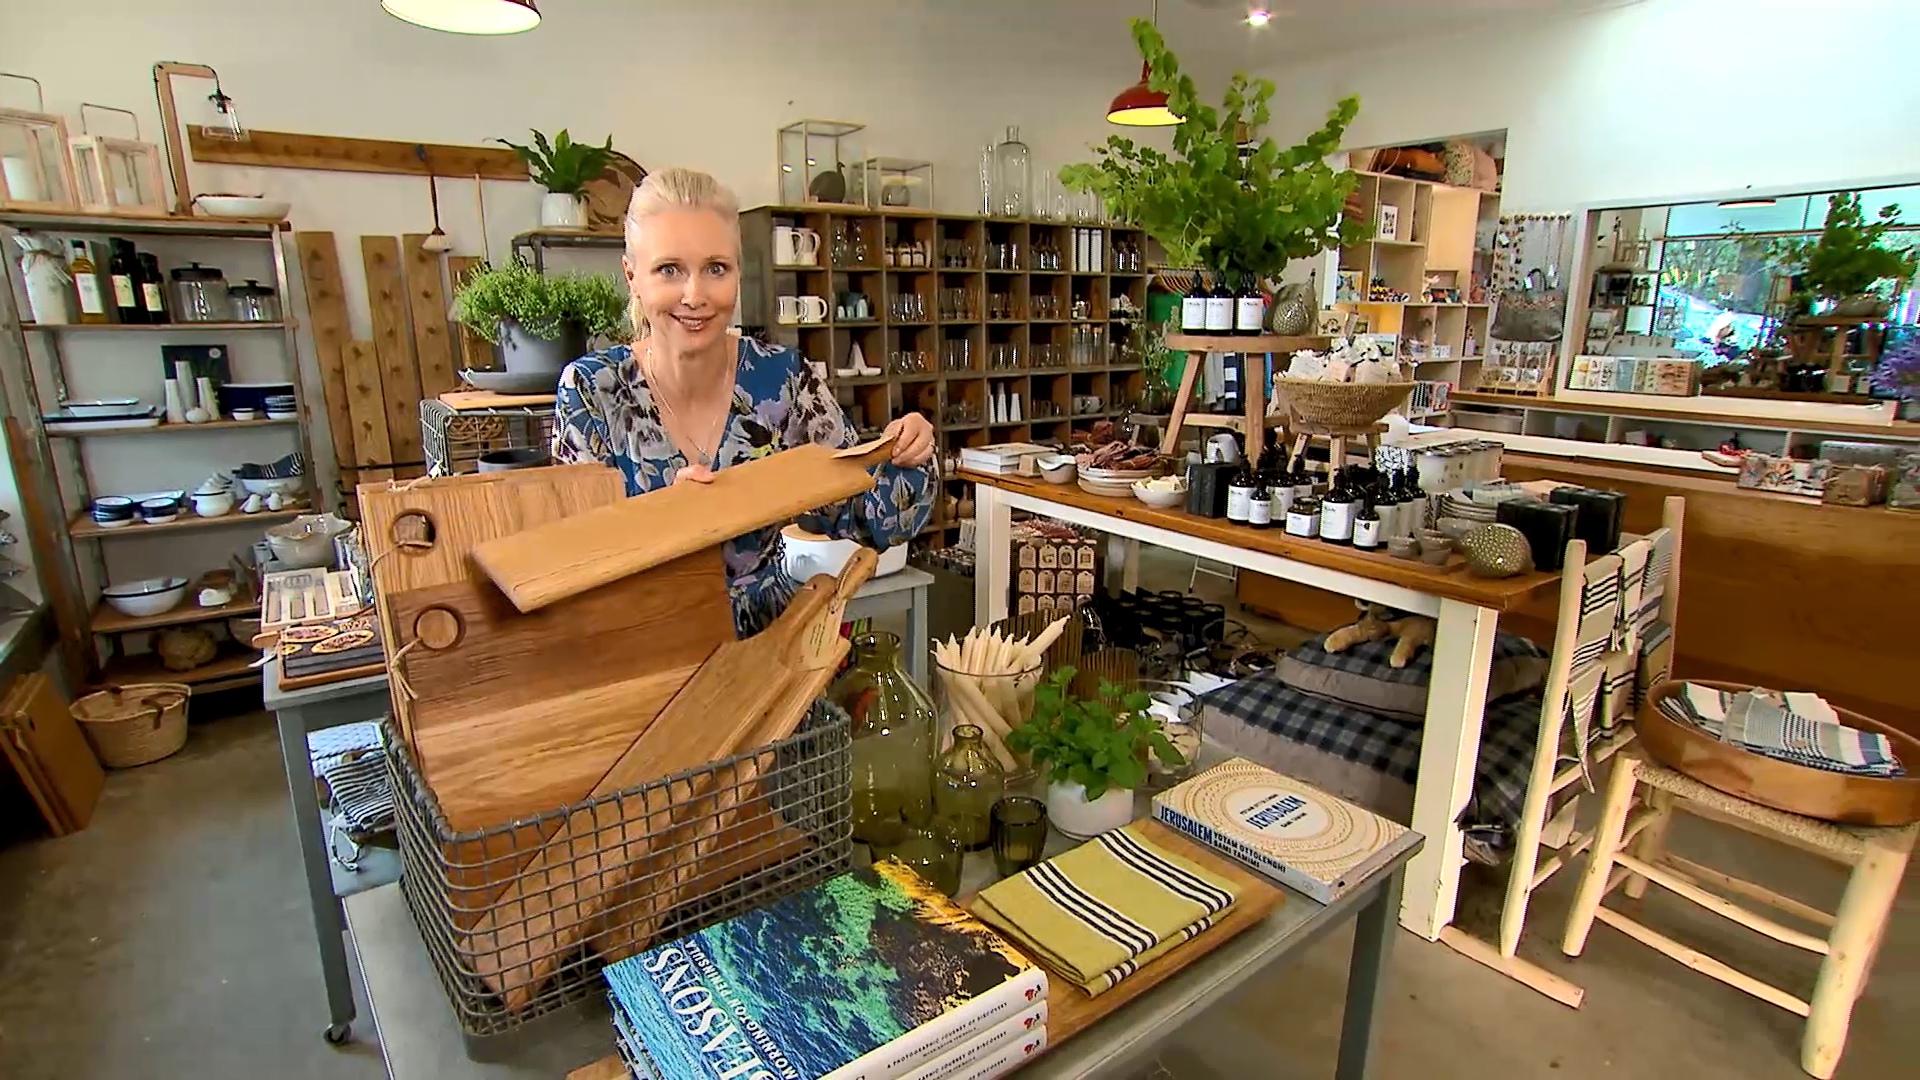 Livinia uncovers Red Hill's boutique shops